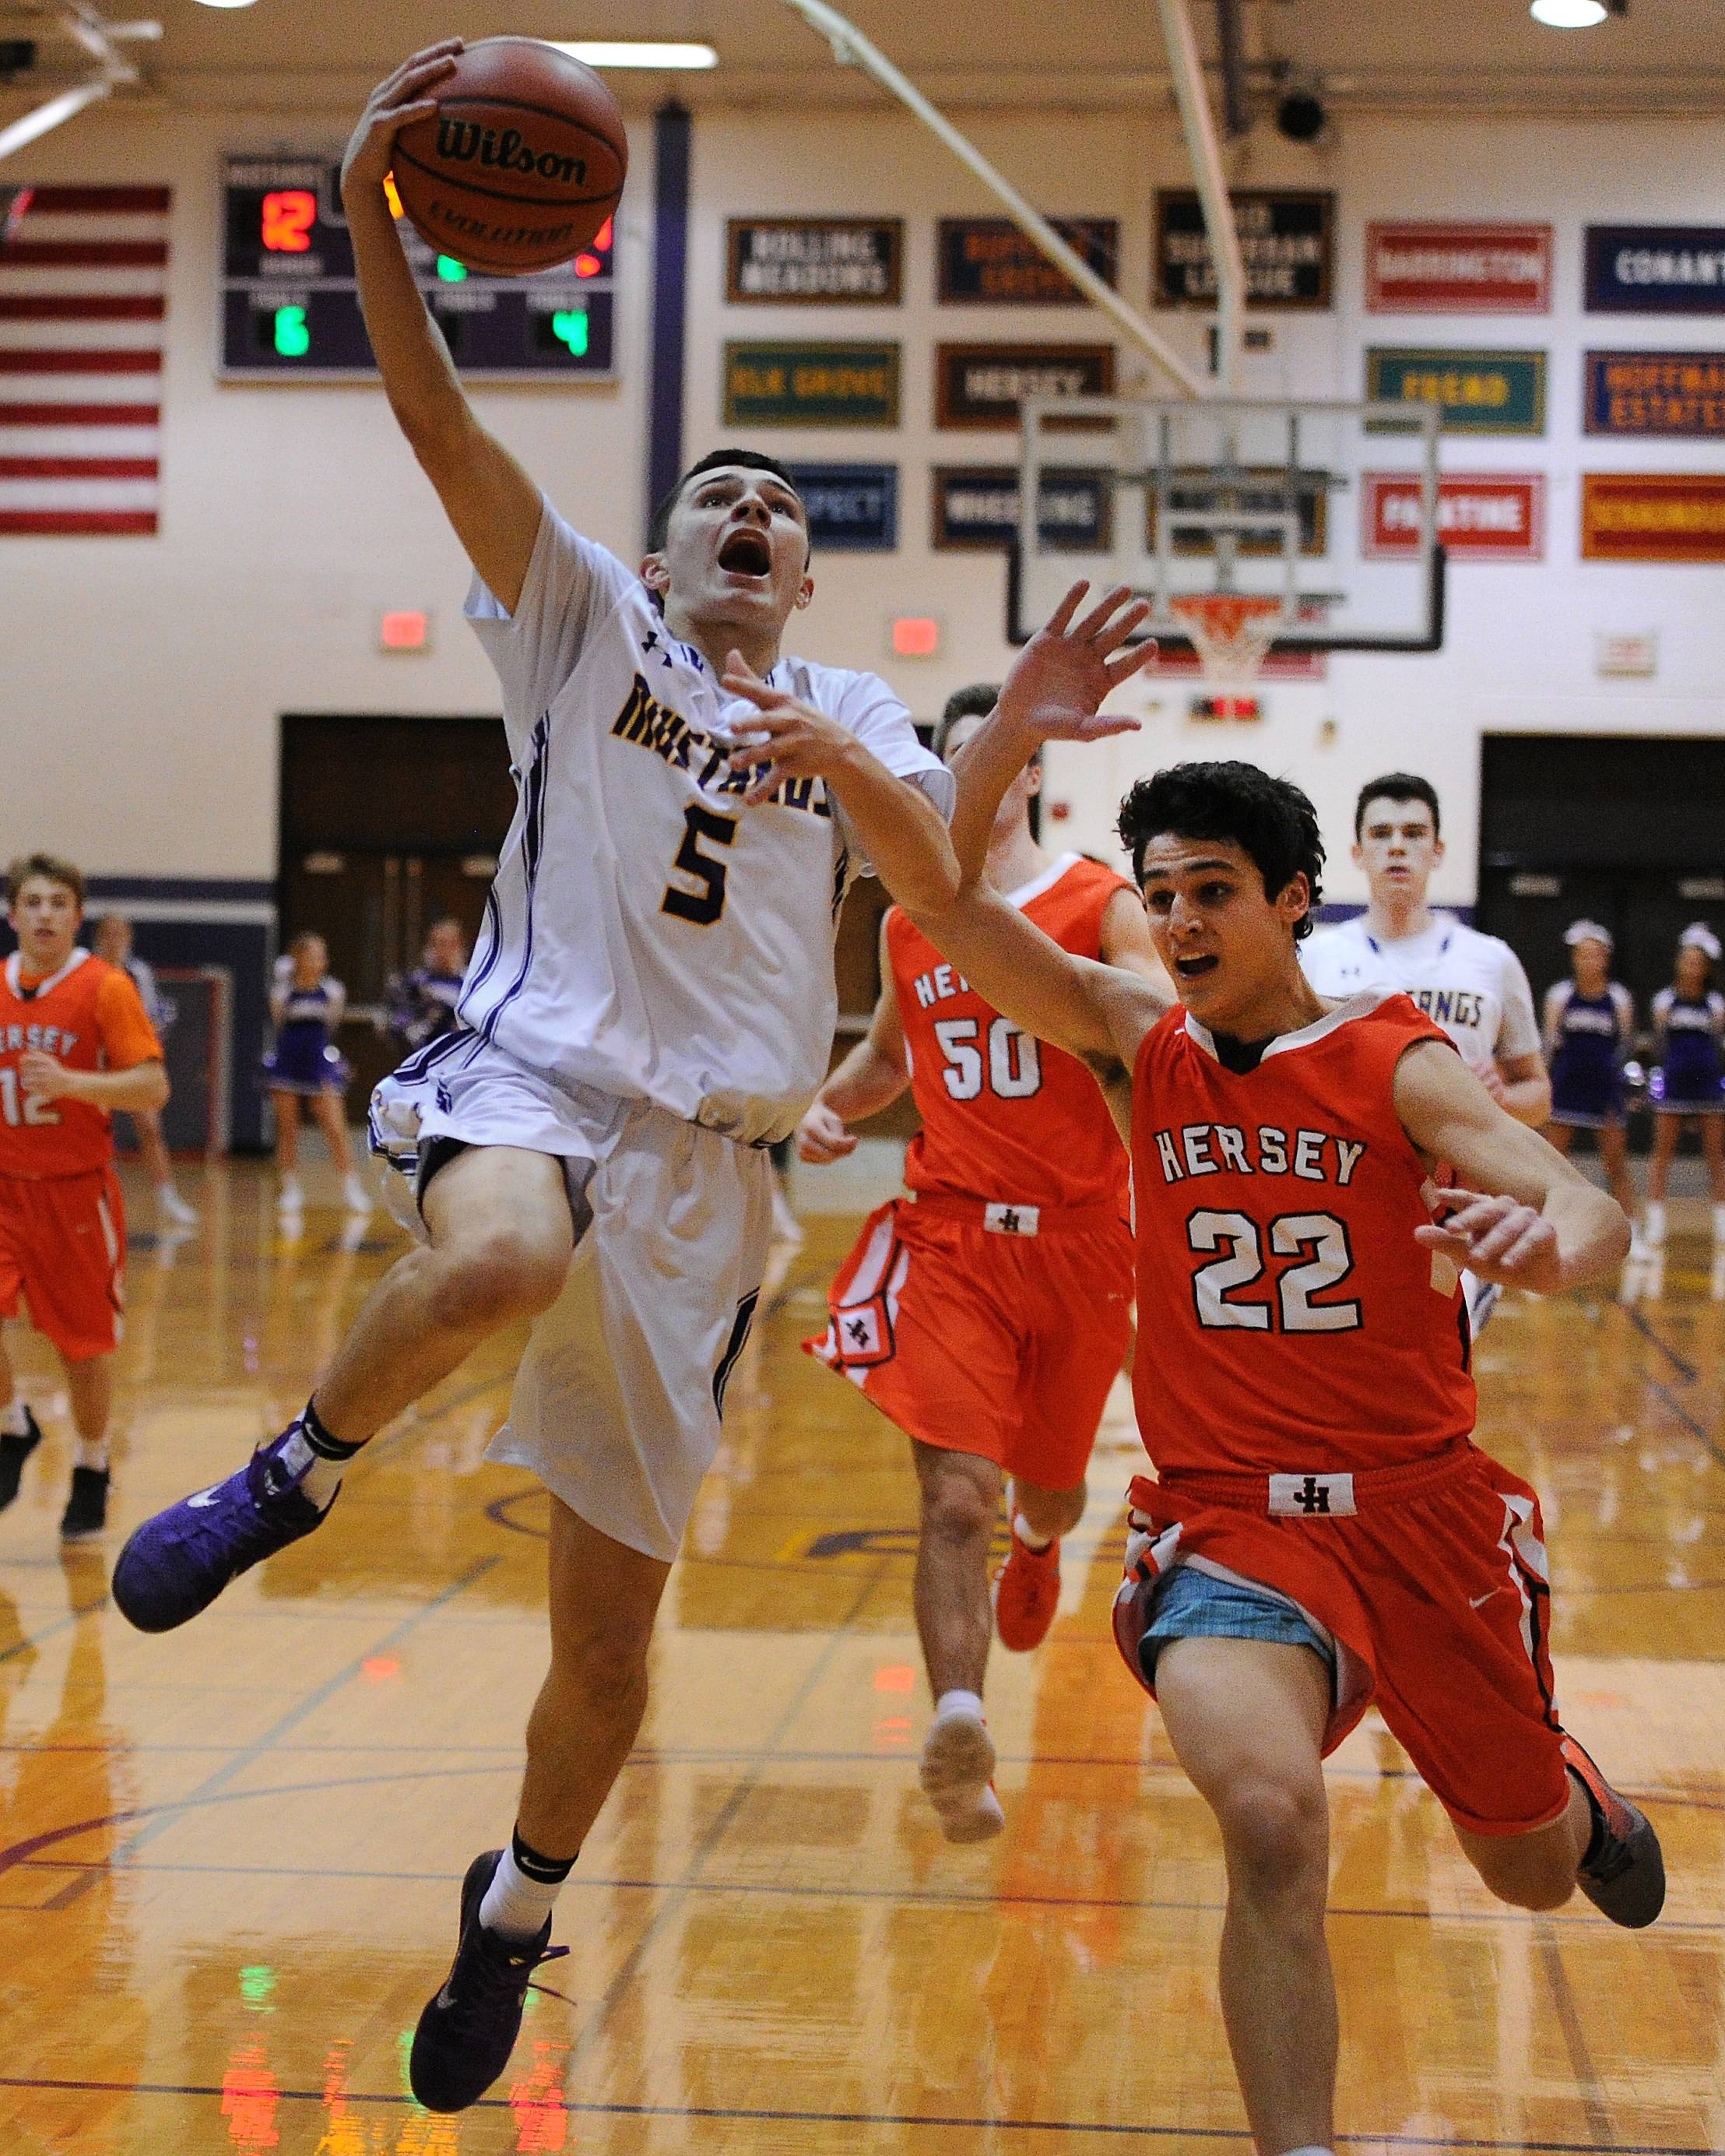 Rolling Meadows' Willis Goodwin delivers two despite pressure from Hersey's Jace Coffaro in the first half of boys varsity basketball at Rolling Meadows on Friday.